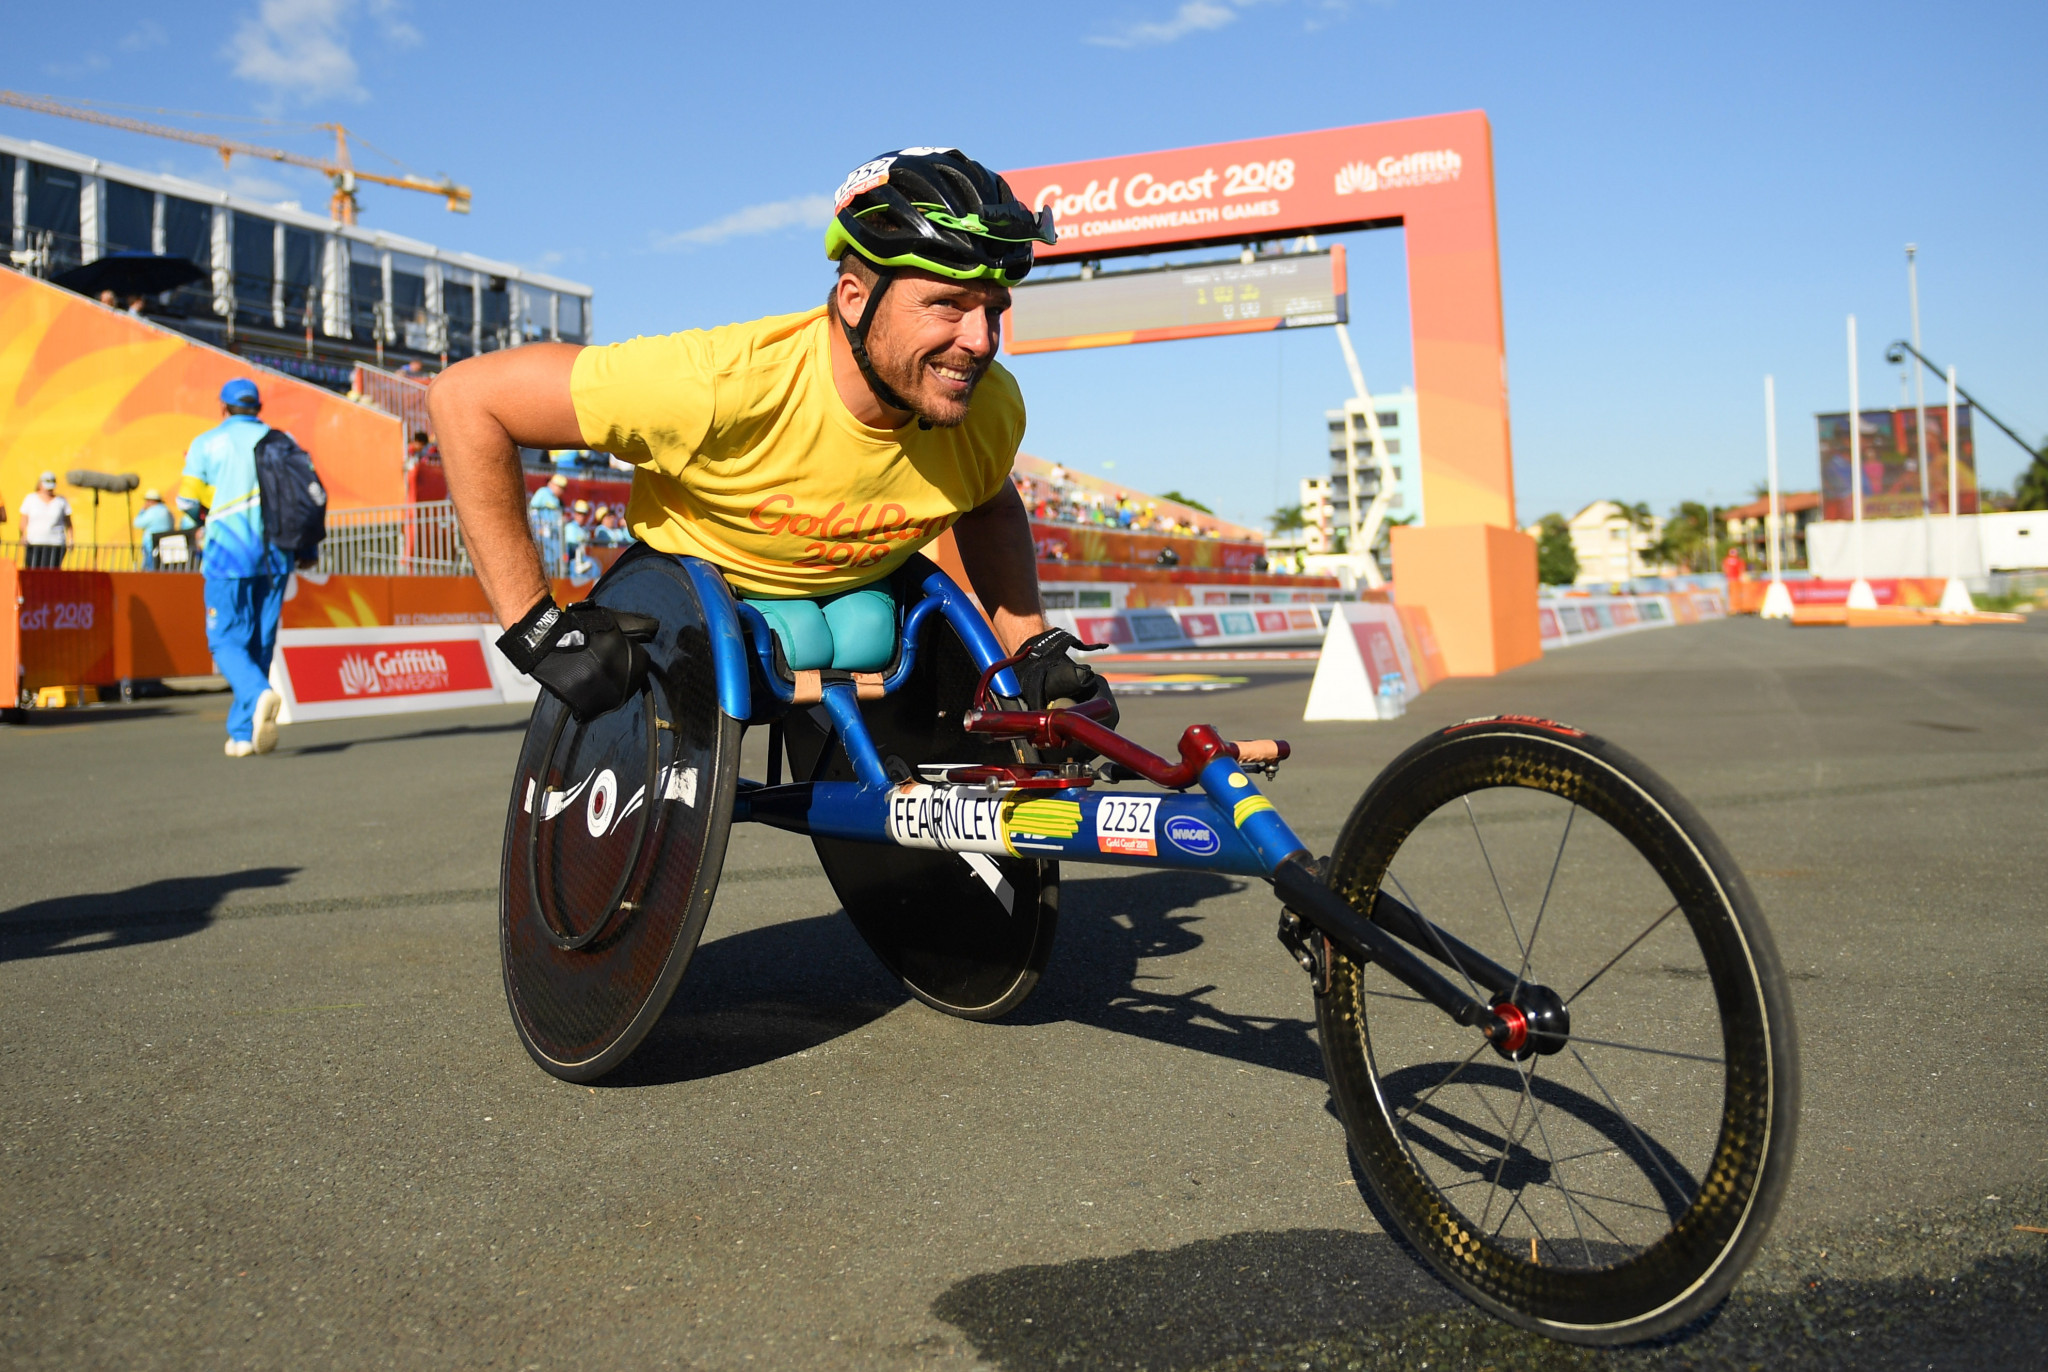 Three-time Paralmypic champion Kurt Fearnley was among the Australian sport stars recognised ©Getty Images